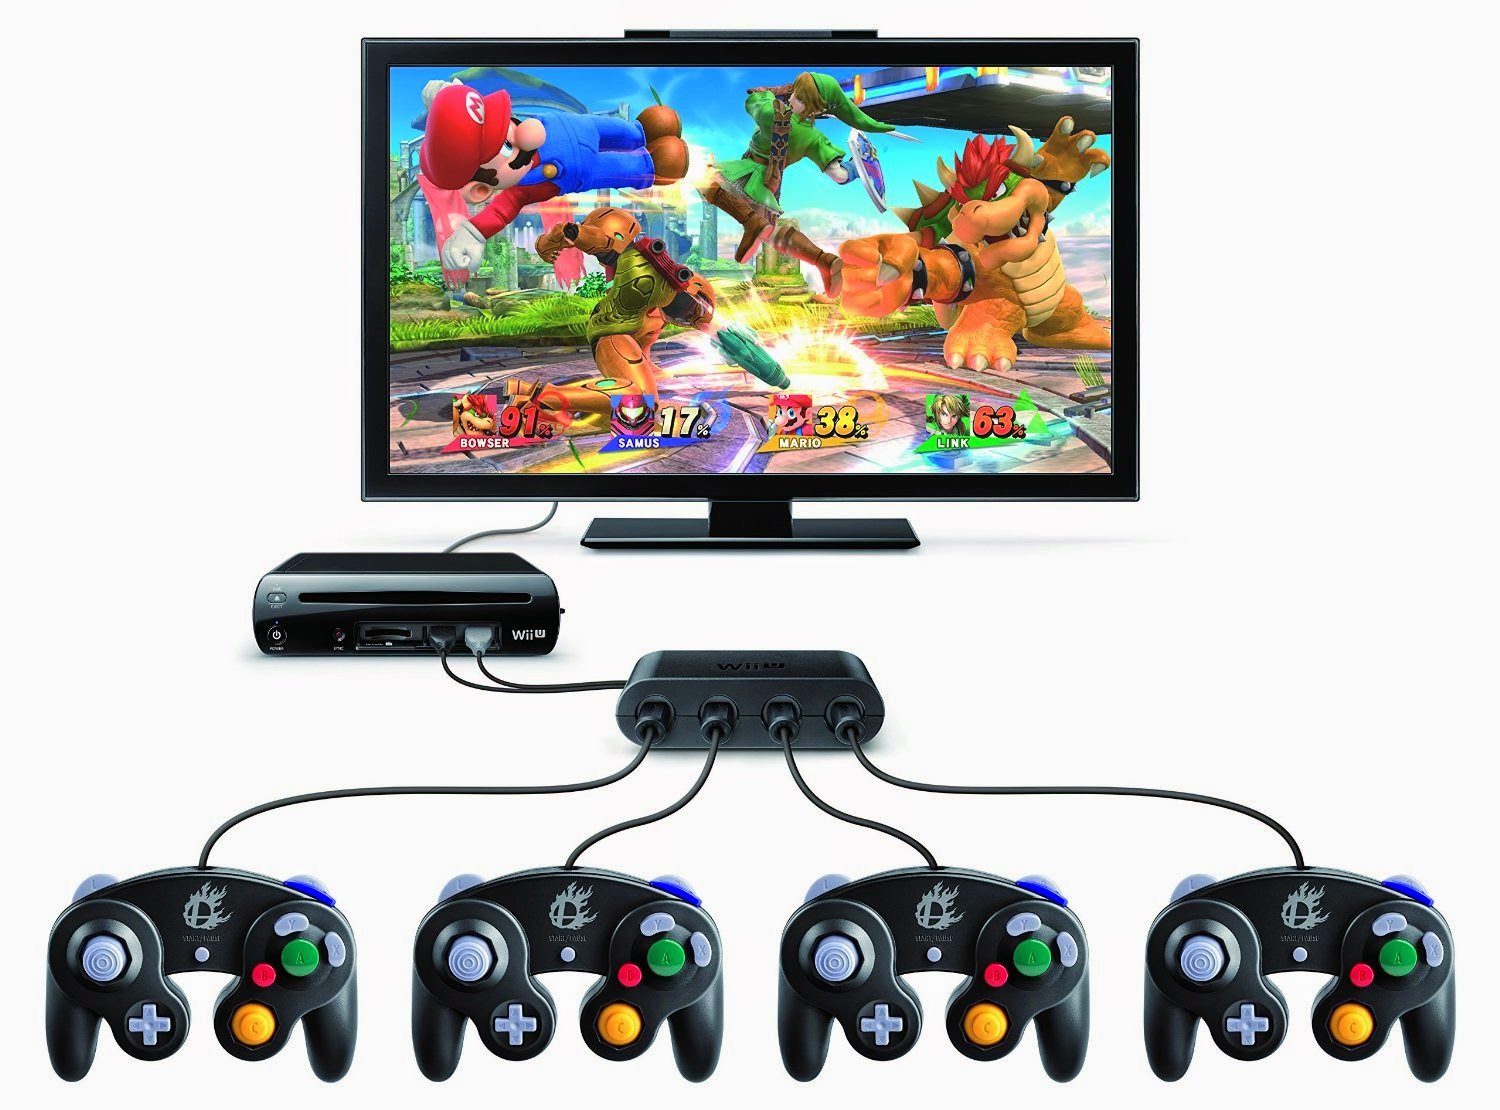 Image of four GameCube Controllers being used to play Super Smash Bros. for Wii U